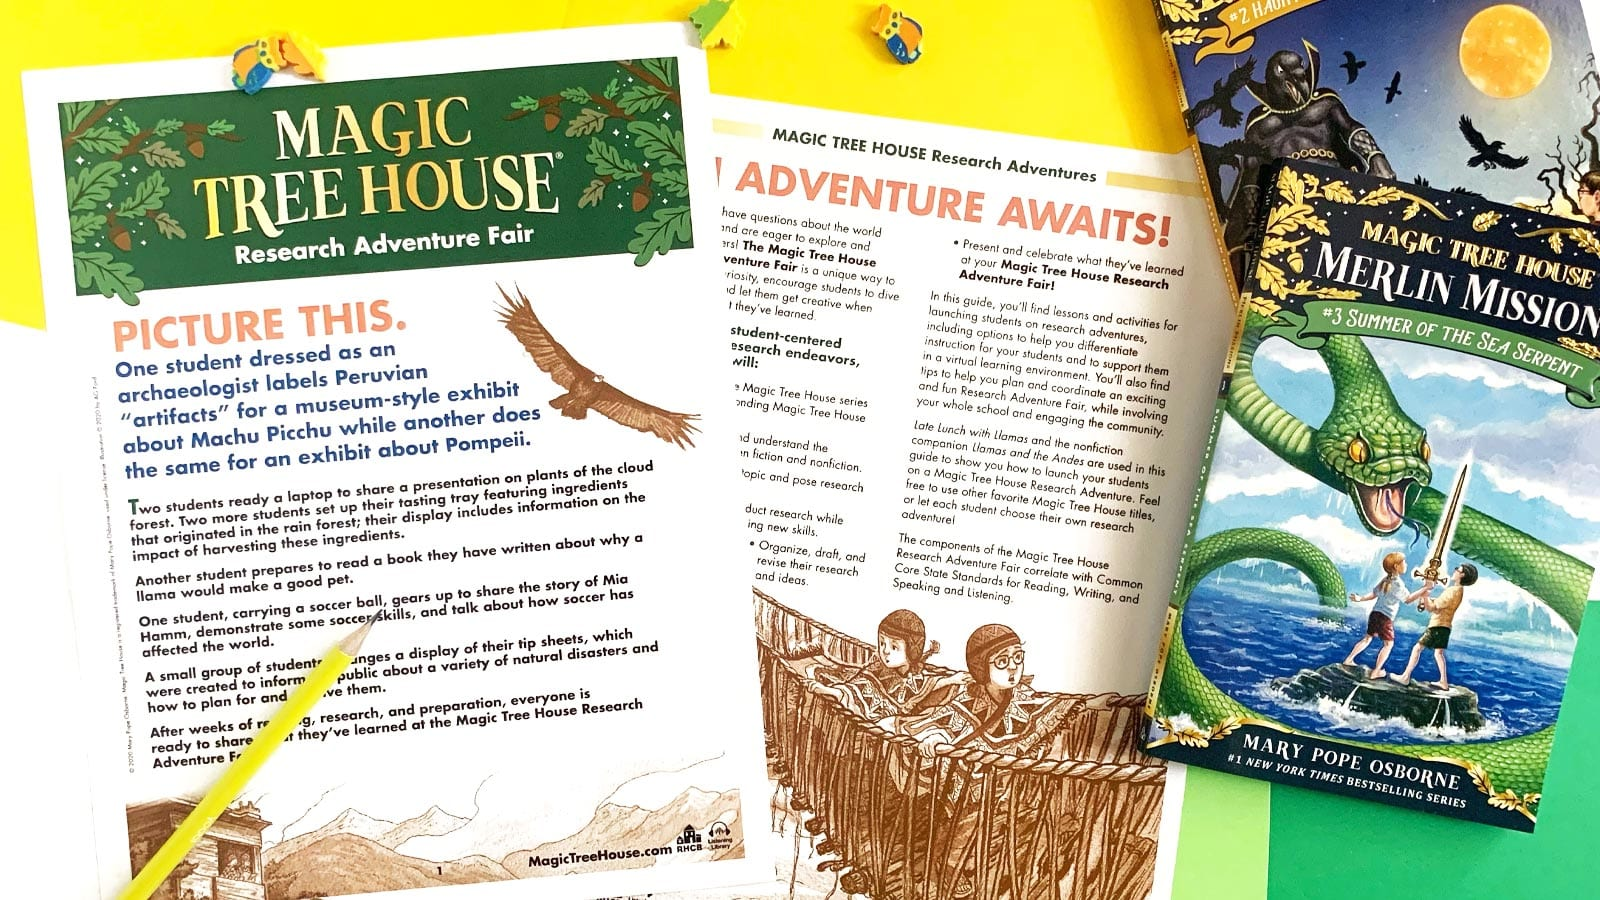 Magic Tree House guide with two books on a colored background.